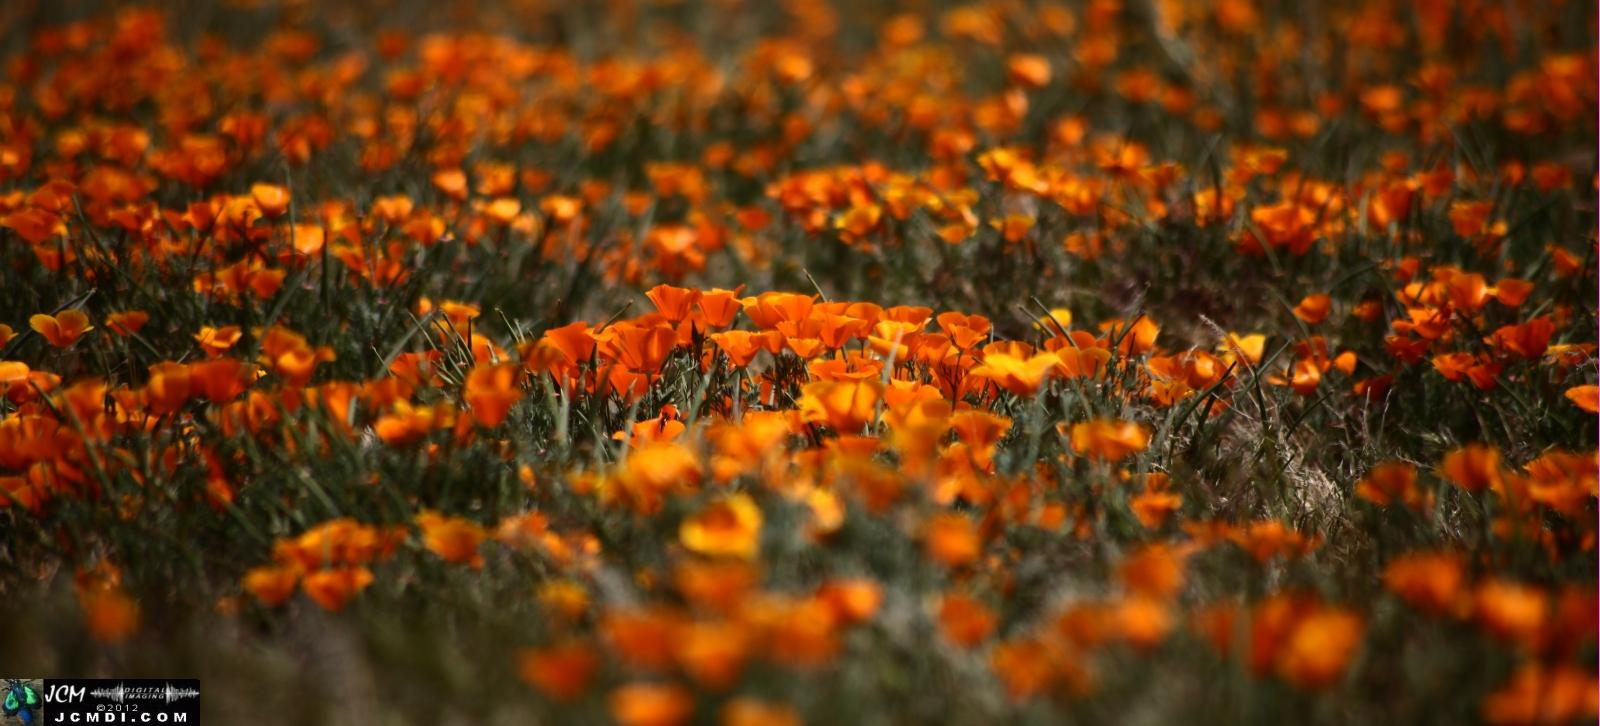 California Poppy Reserve in the Antelope Valley, CA, Spring 2012